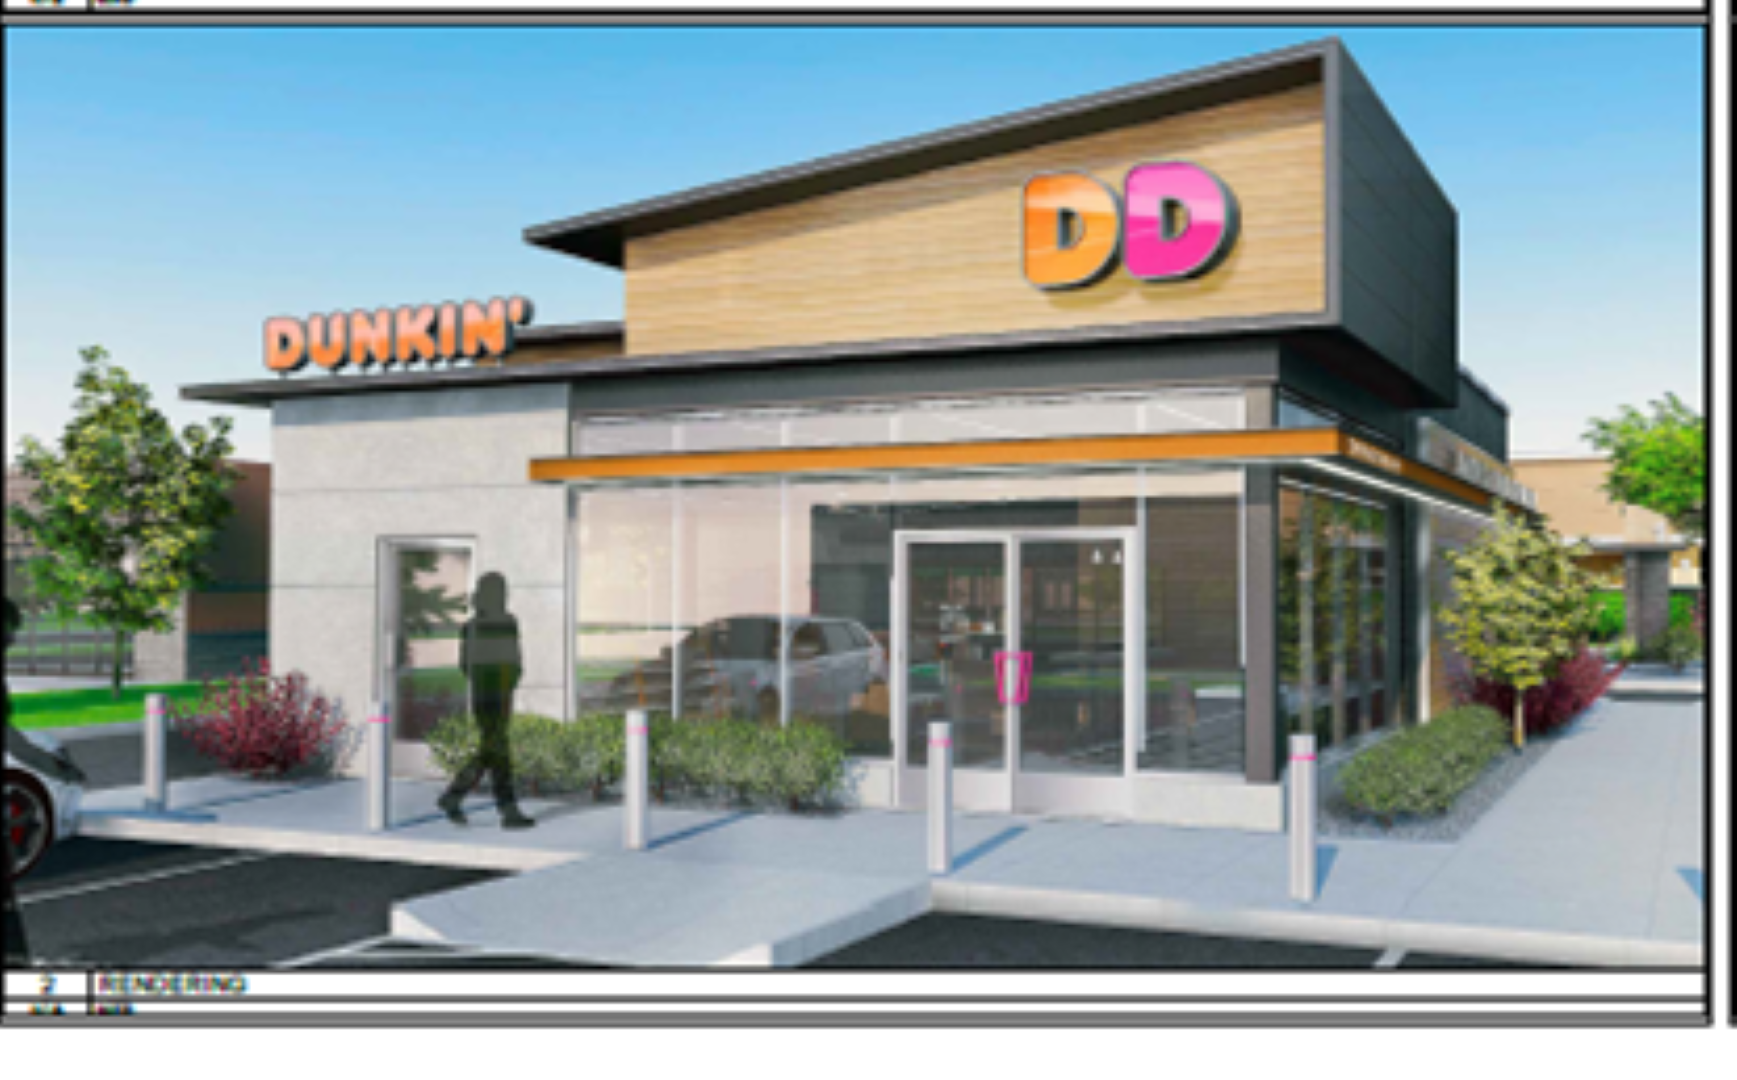 Image of Dunkin Donuts building